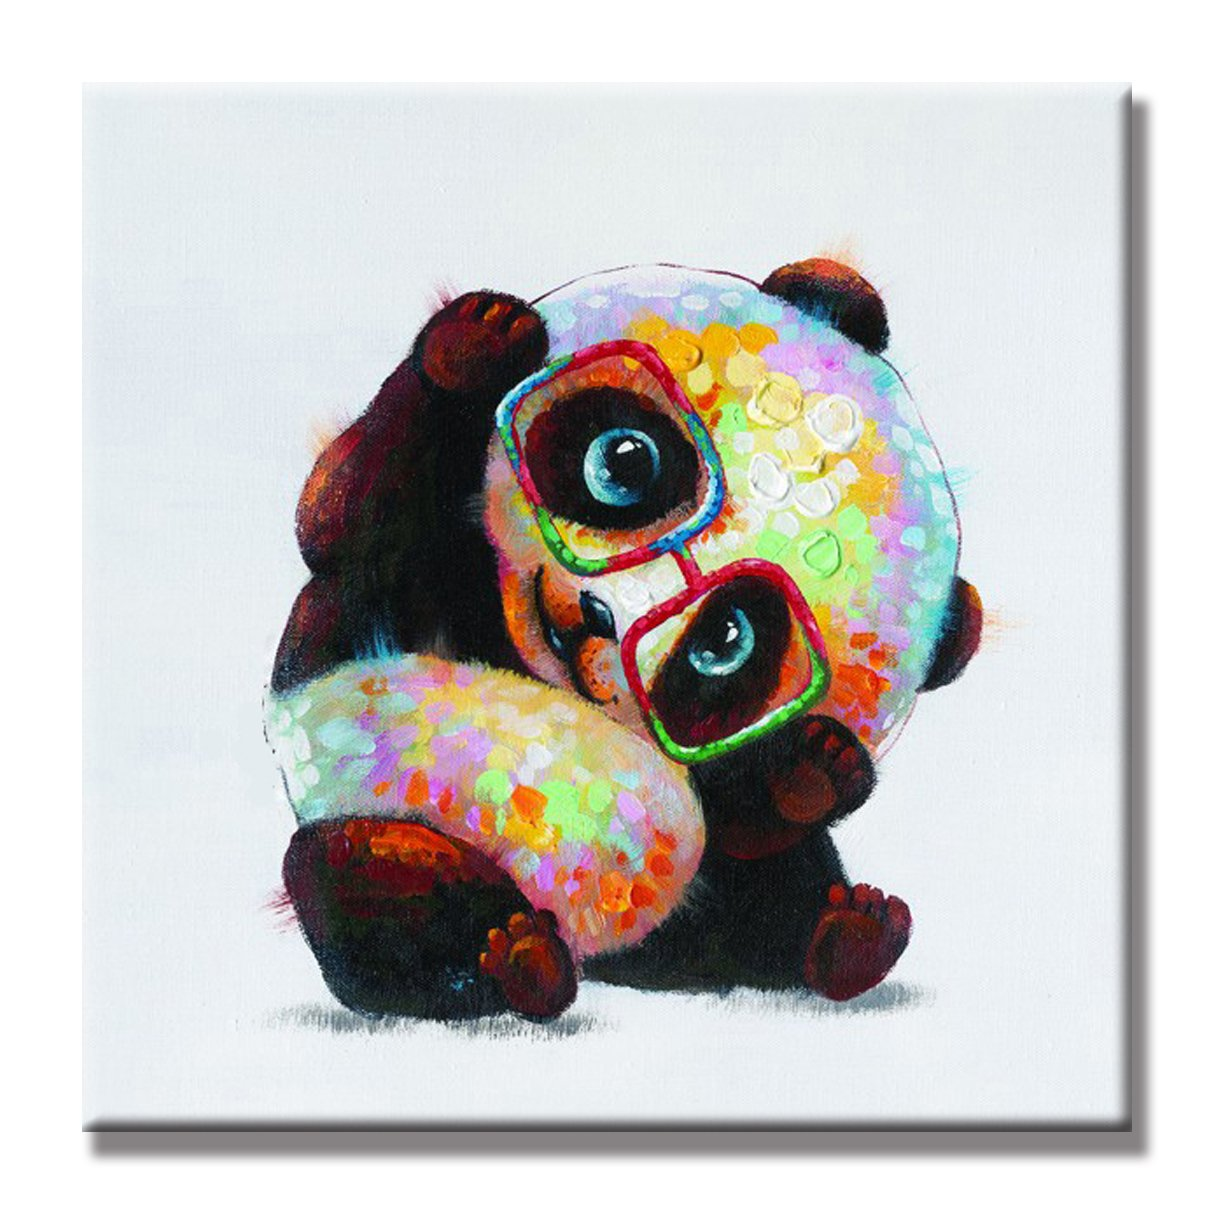 SEVEN WALL ARTS -Modern Animal Painting Cute Panda Wears Glasses Artwork on Canvas Stretched &Framed Ideal Gift Home Decor for Kitchen Kids Bedroom Living Room - Ready to Hang 24 x 24 Inch